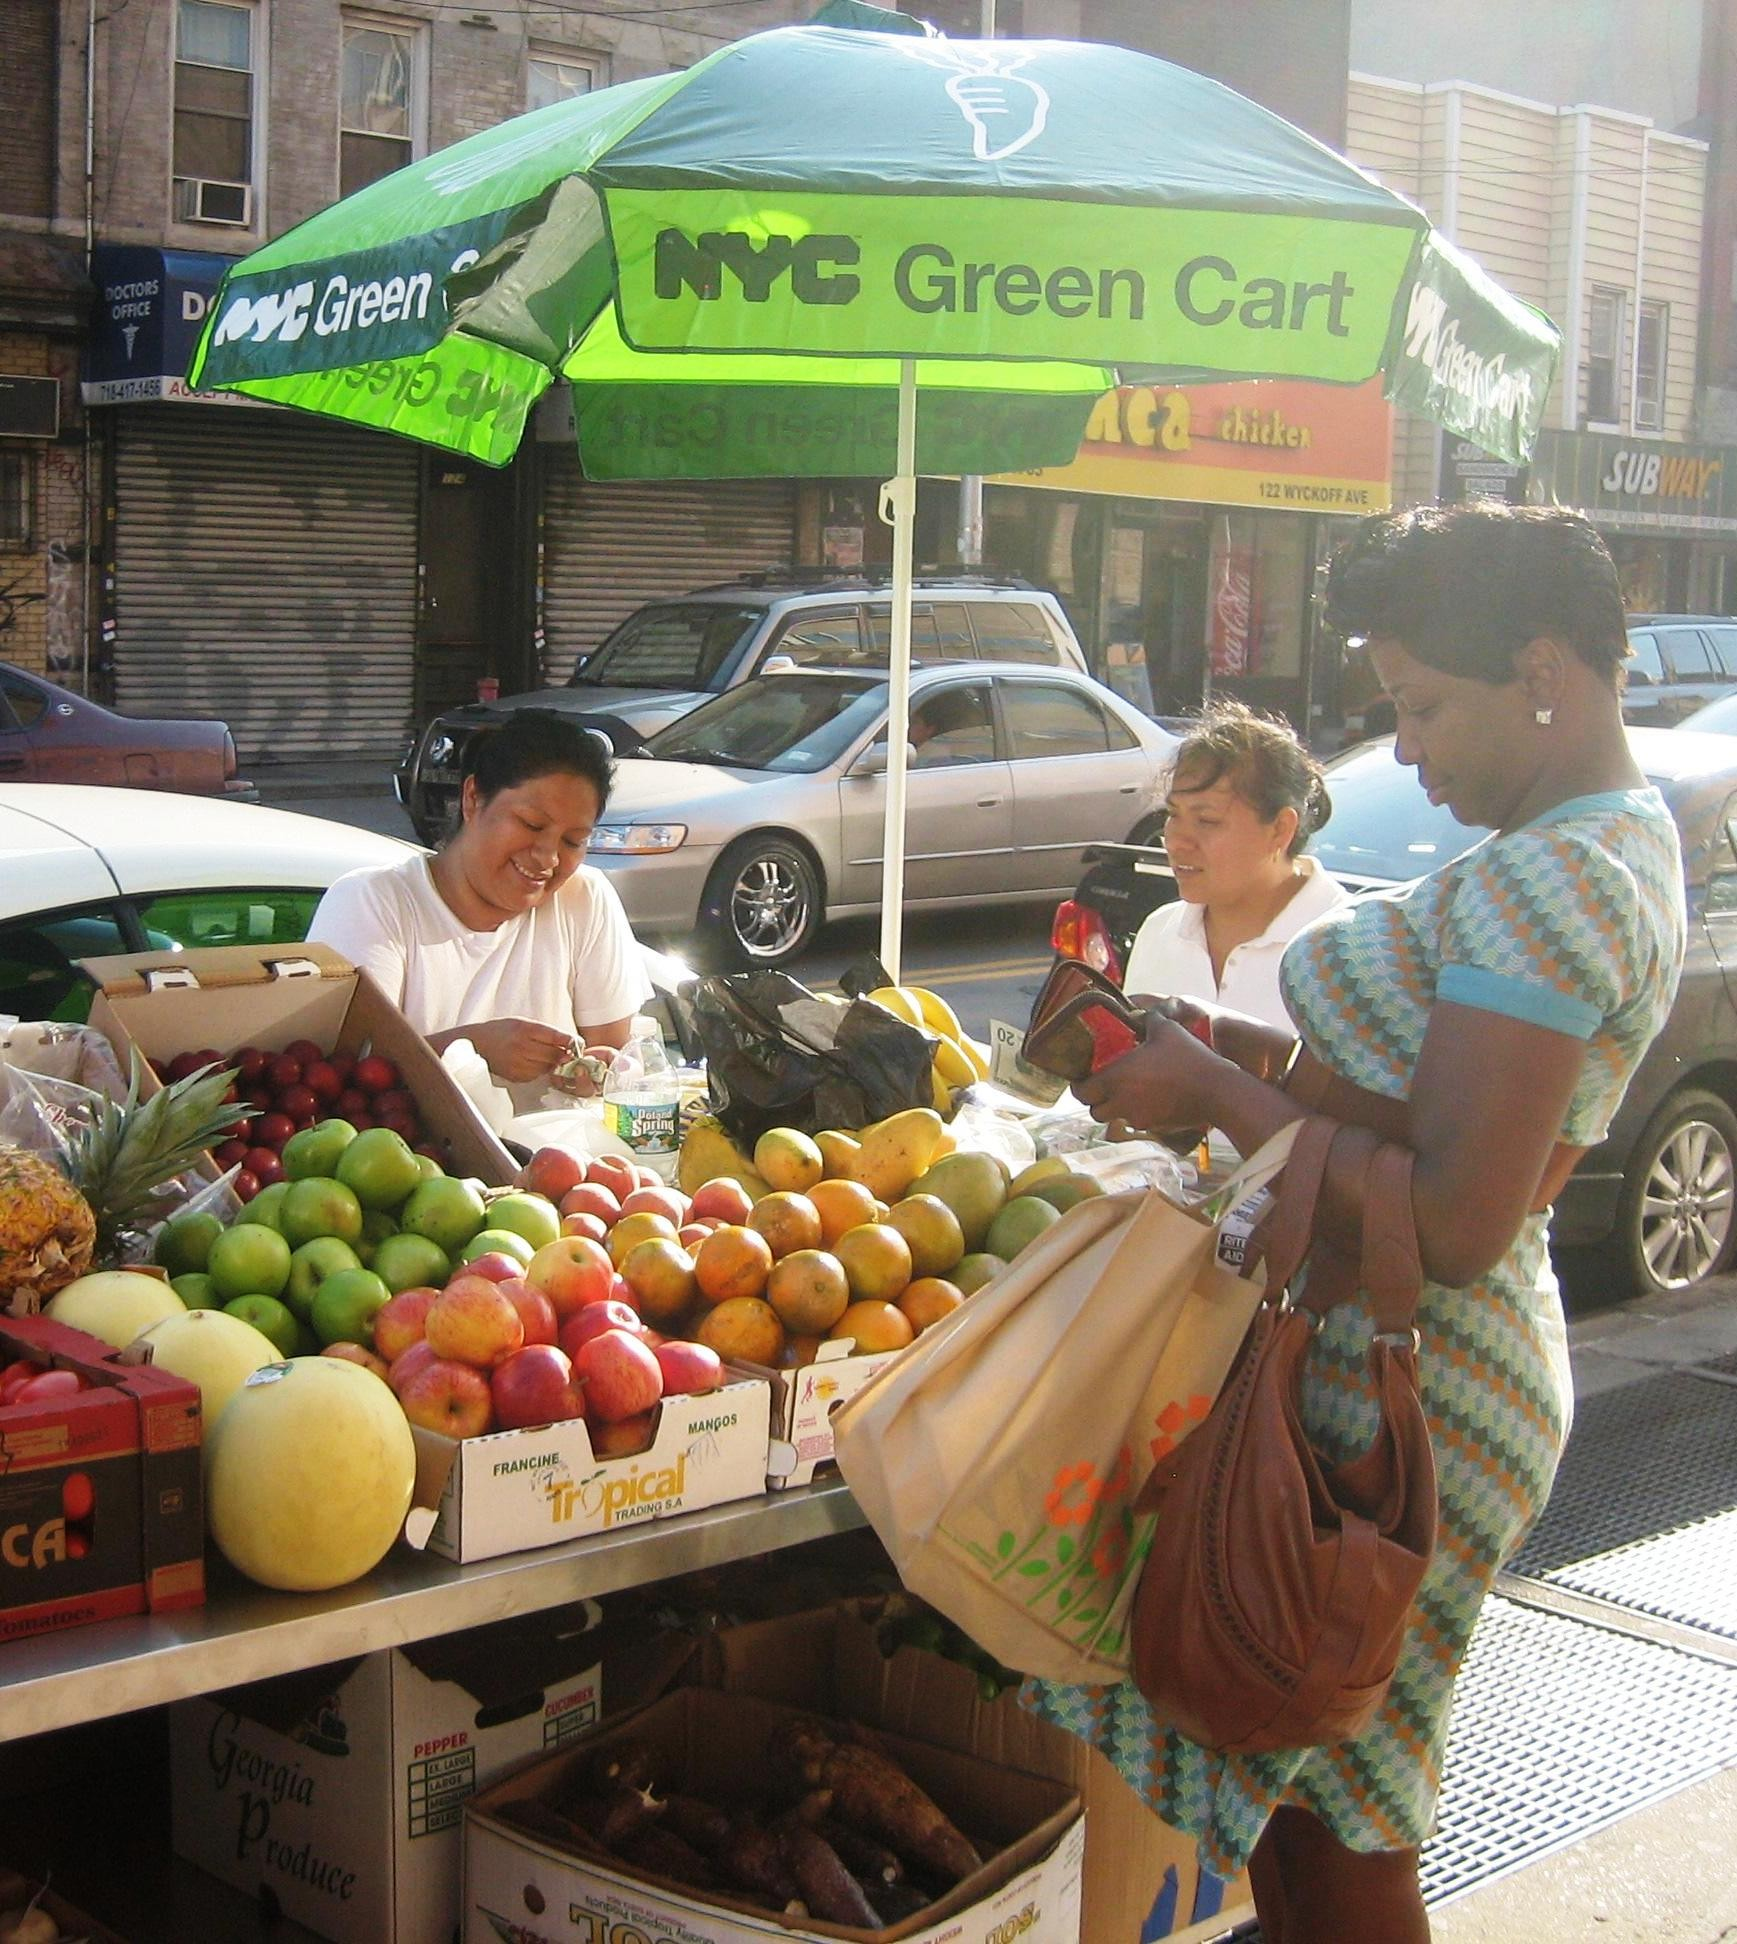 An NYC Green Cart on the street.